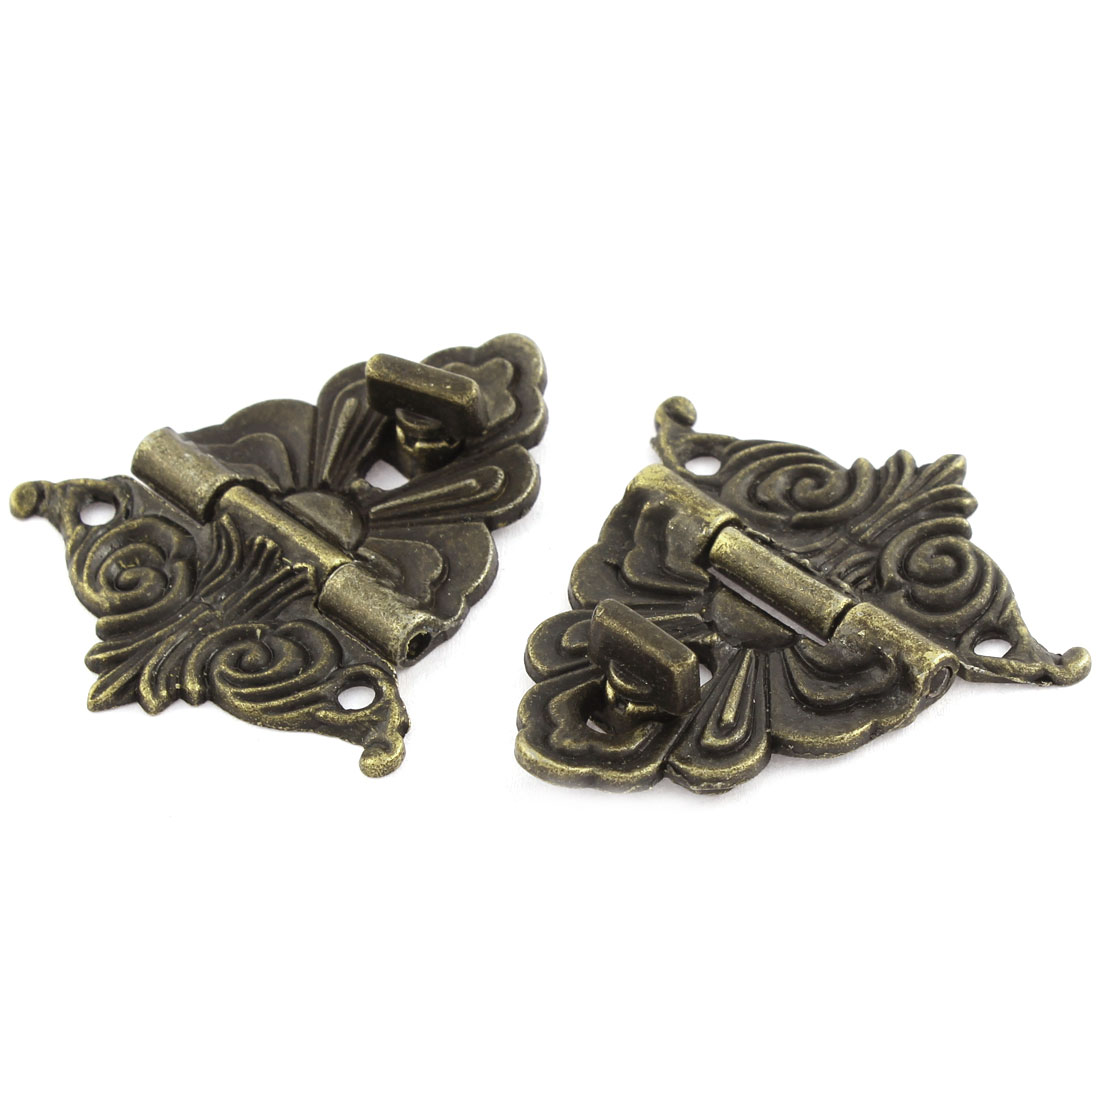 2 Pcs Zinc Alloy Hardware Floral Antique Style Wooden Gift Box Latchs Buckle